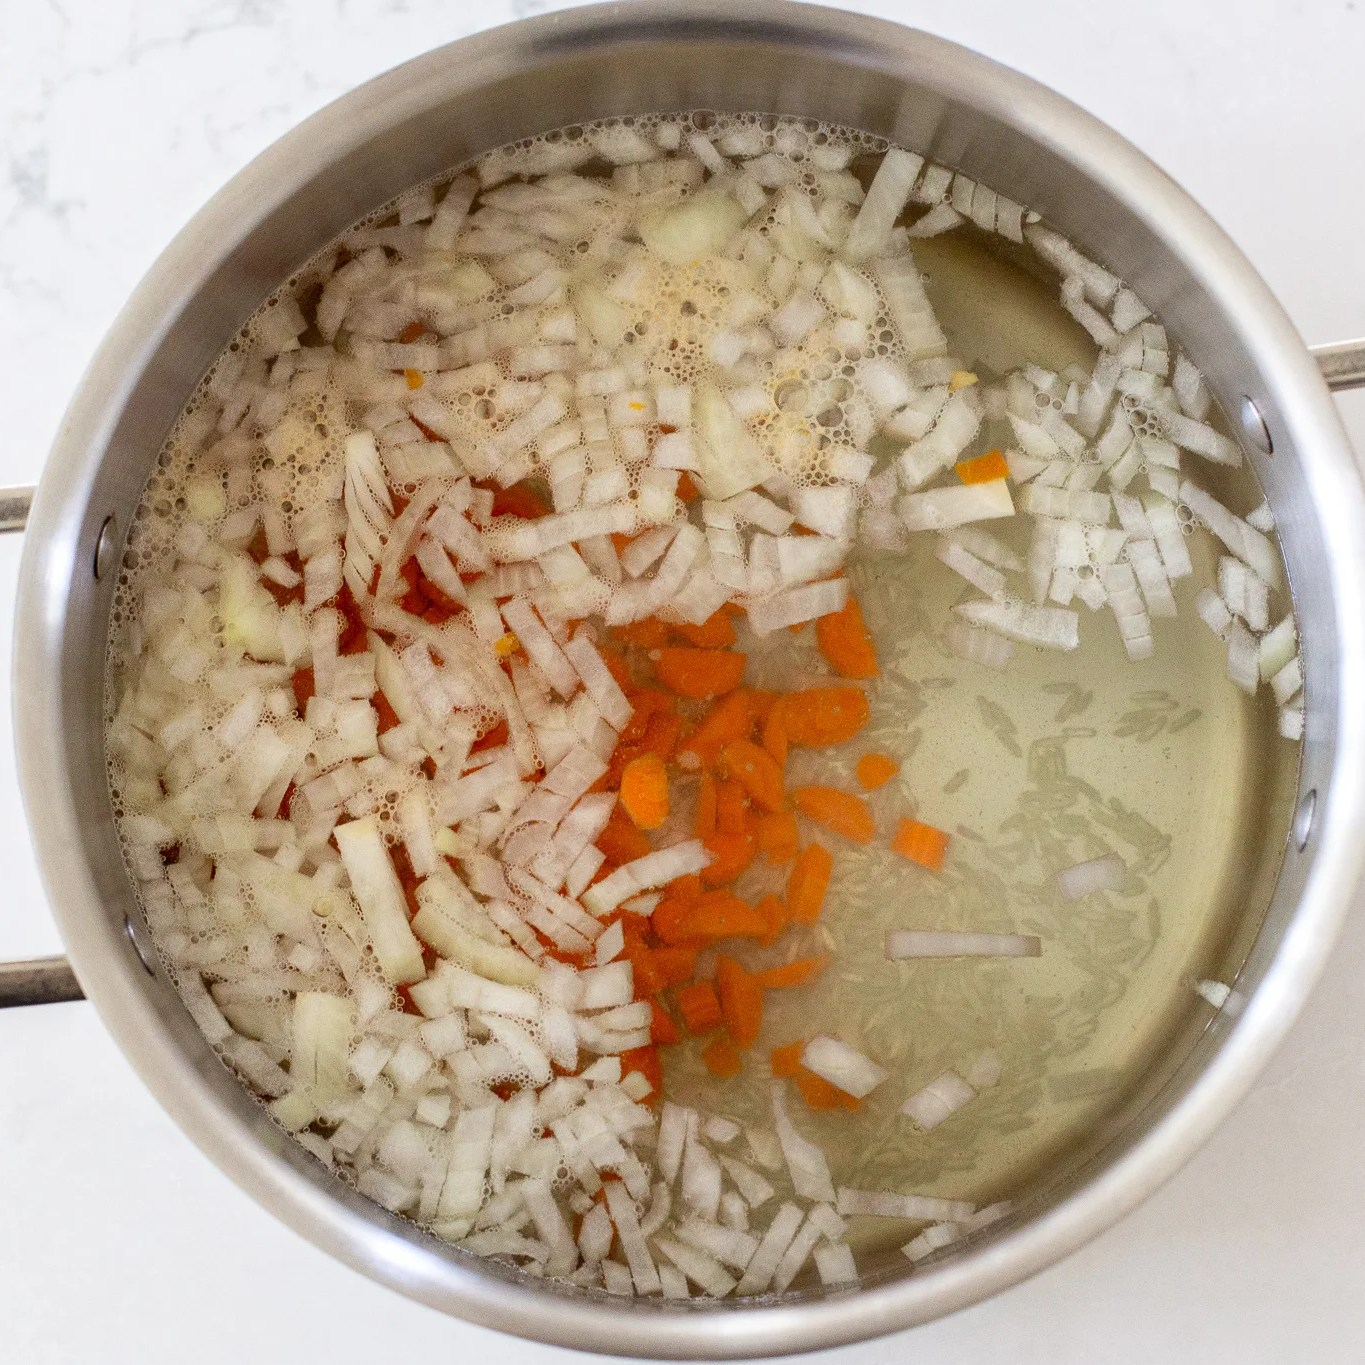 onions, carrots and rice in a pot with water